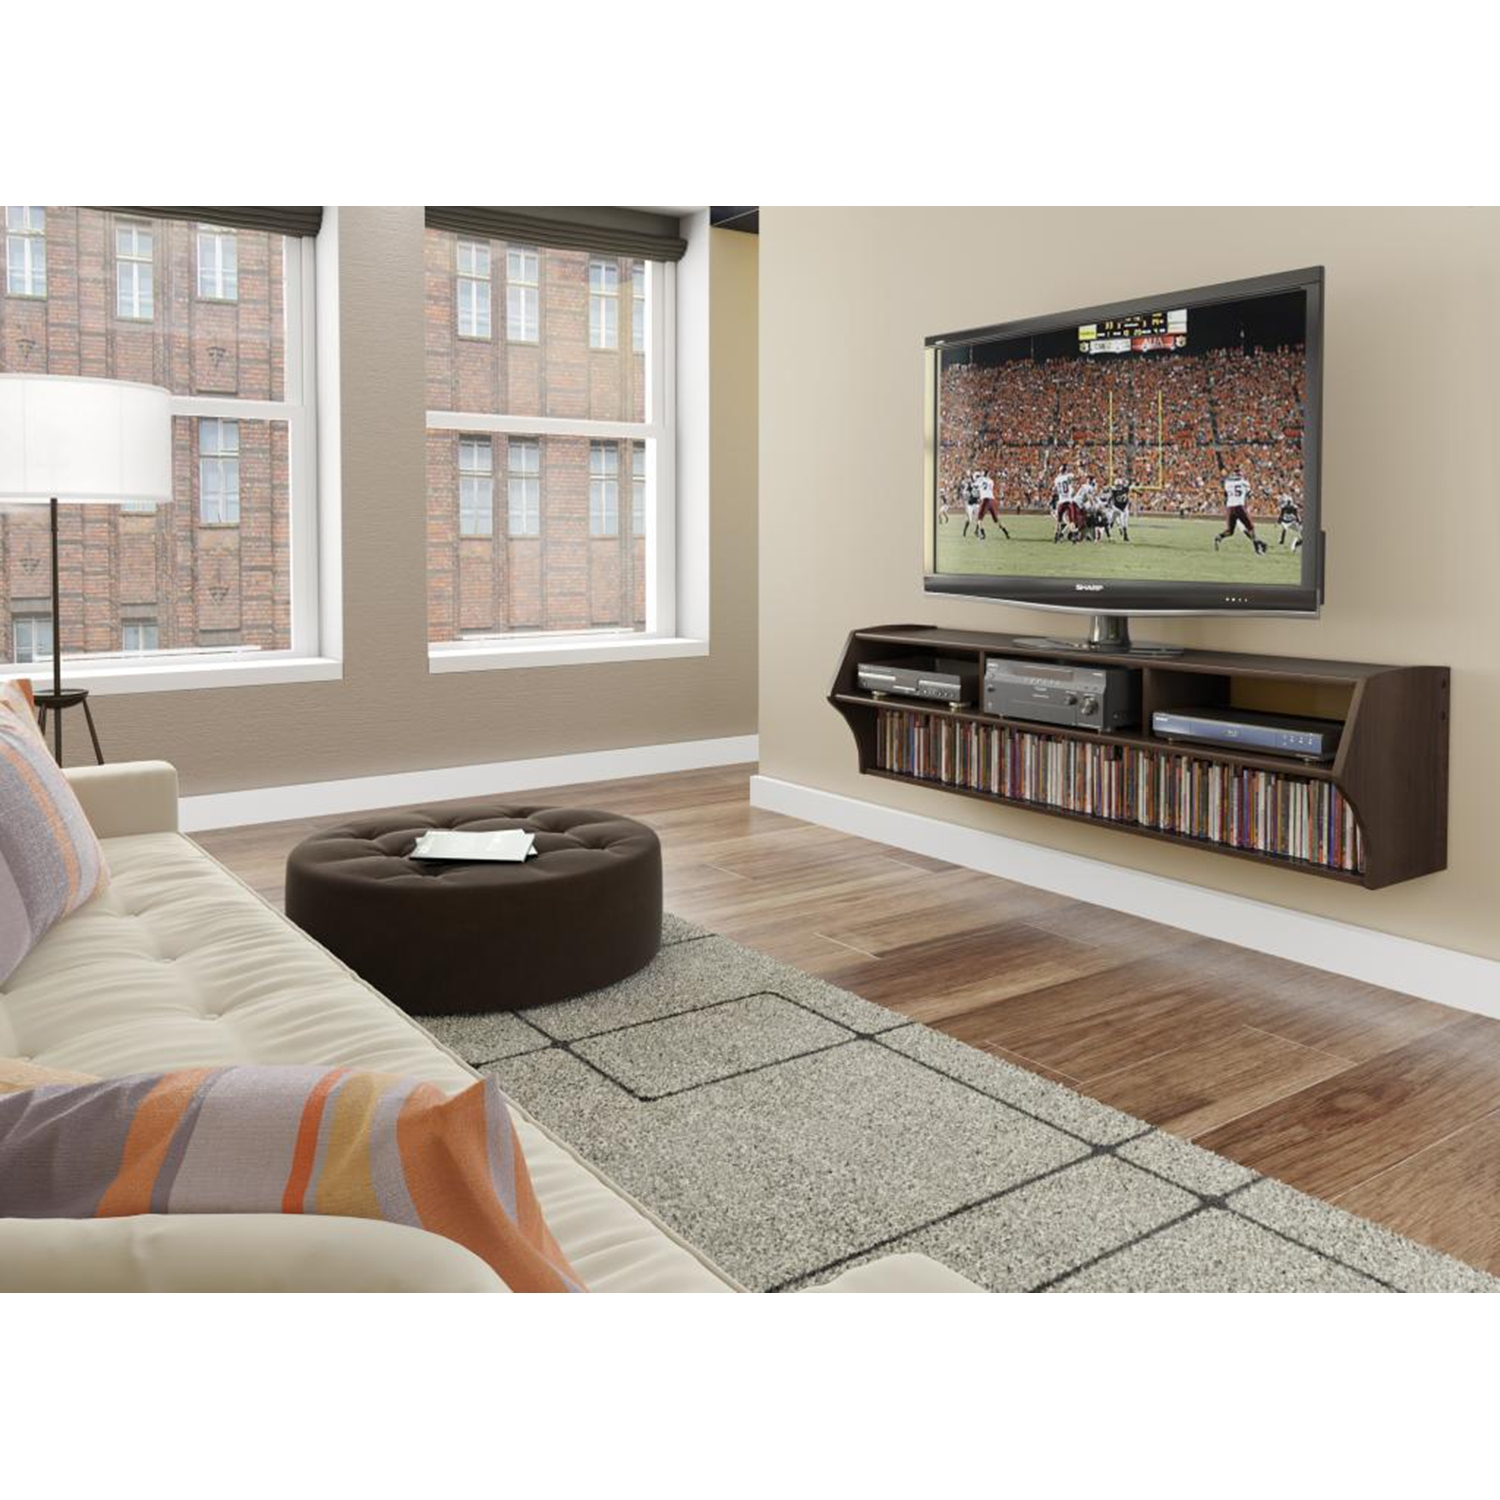 Altus Plus 58 Inch Floating TV Stand - Espresso - PRE-ECAW-0208-1